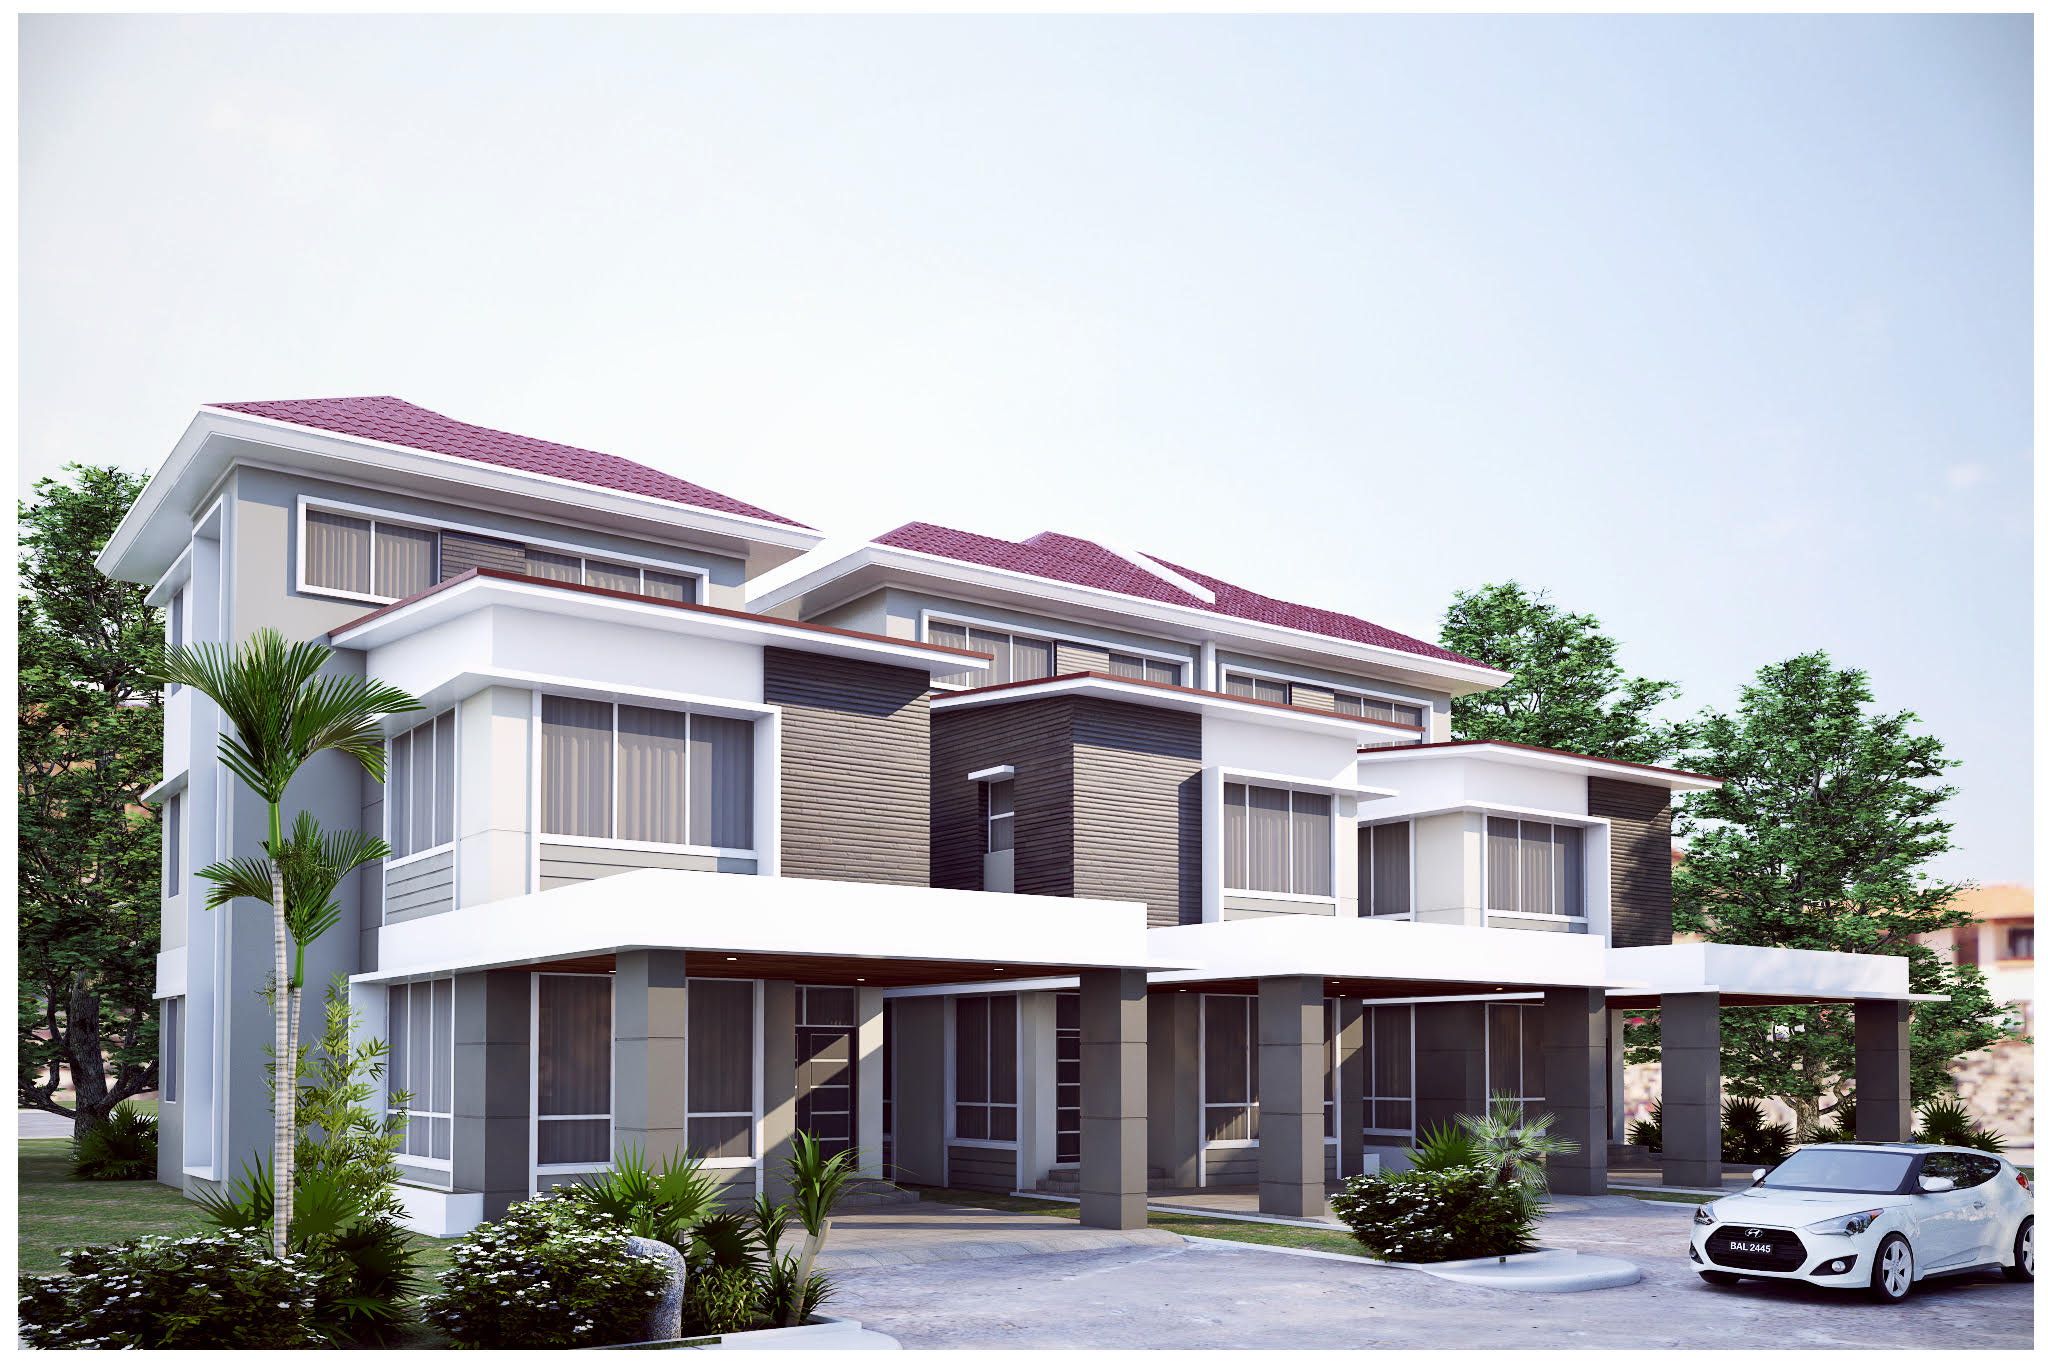 Pan villa properties proposed the palm tanah jambu 3 for Terrace house reality show